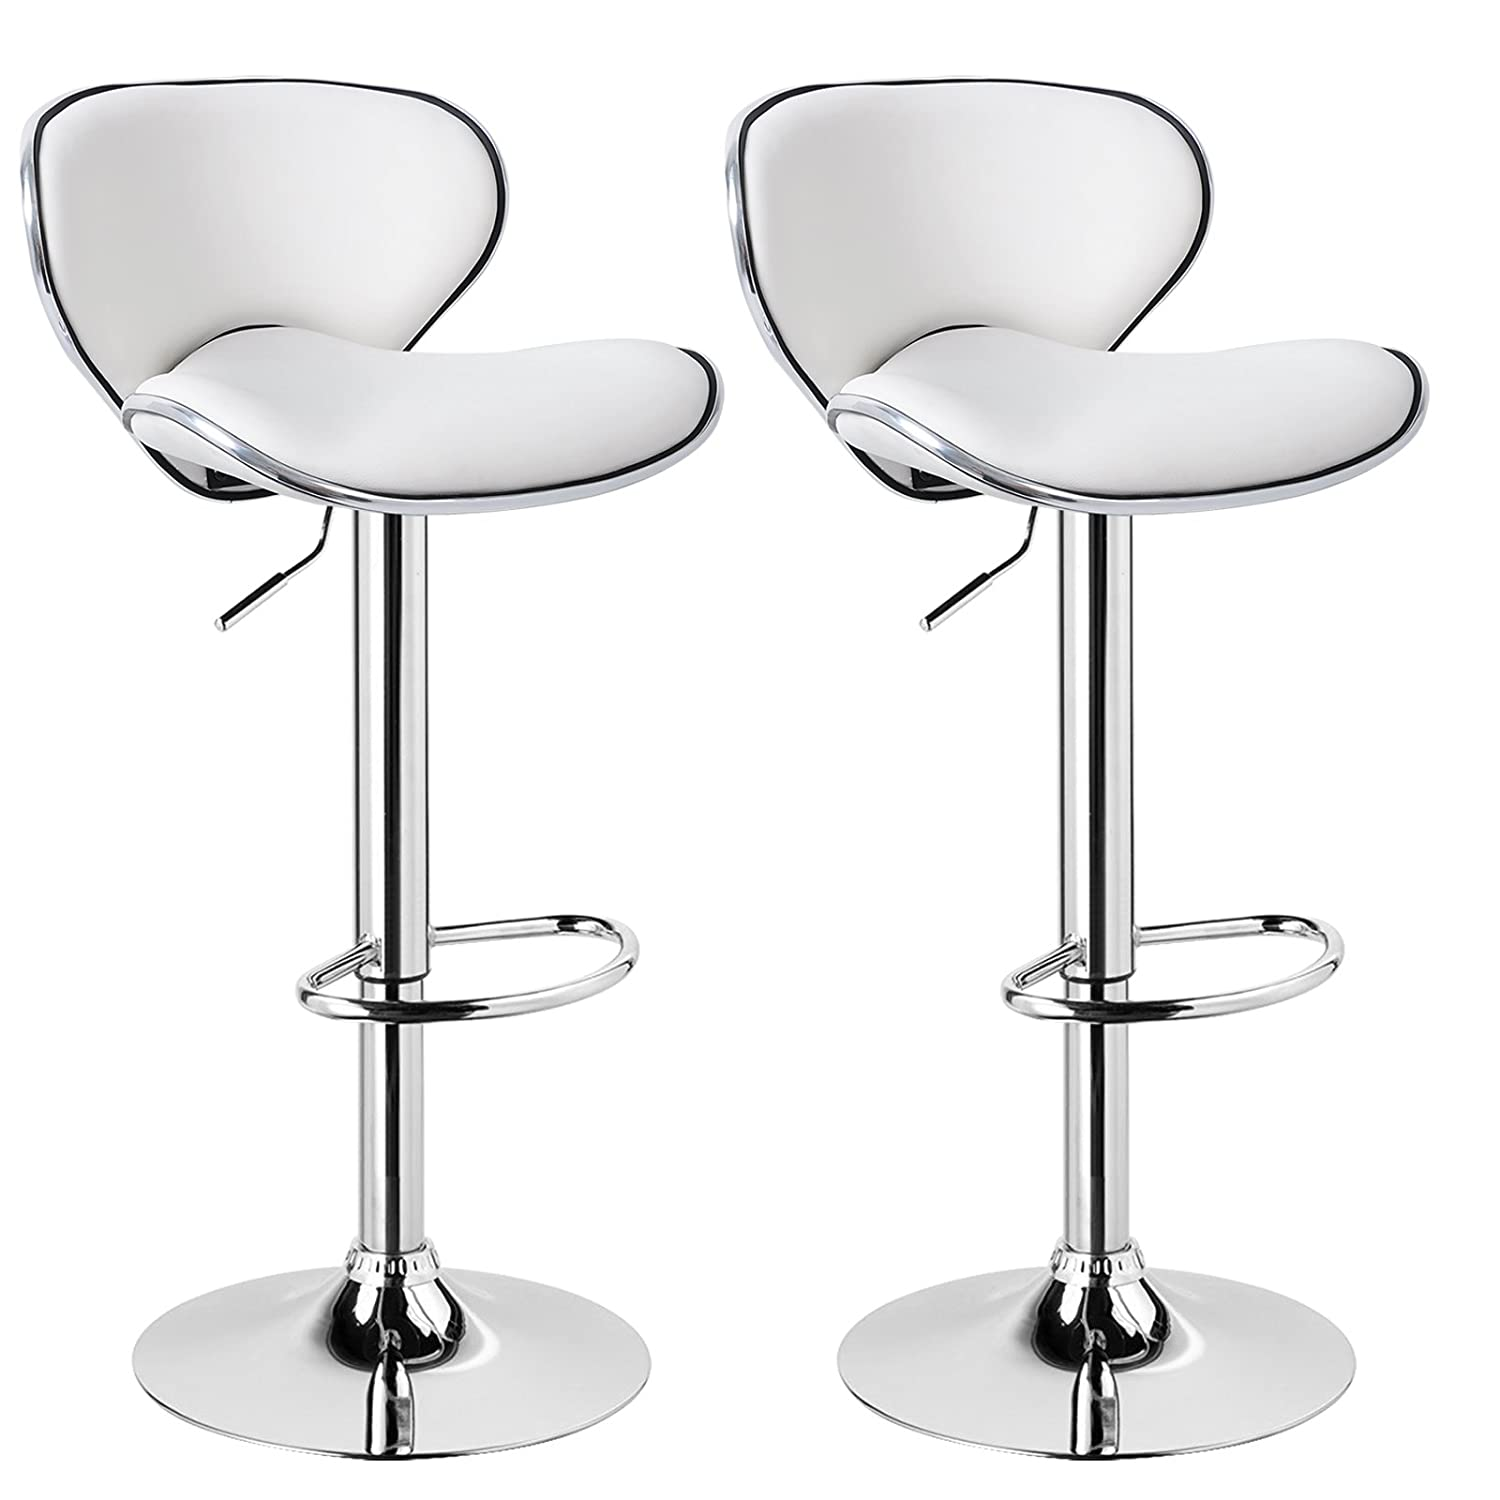 WOLTU Bar Stools Brown Bar Chairs Breakfast Dining Stools for Kitchen Island Counter Bar Stools Set of 2 pcs Faux Leather Exterior//Adjustable Swivel Gas Lift//Chrome Steel Footrest /& Base